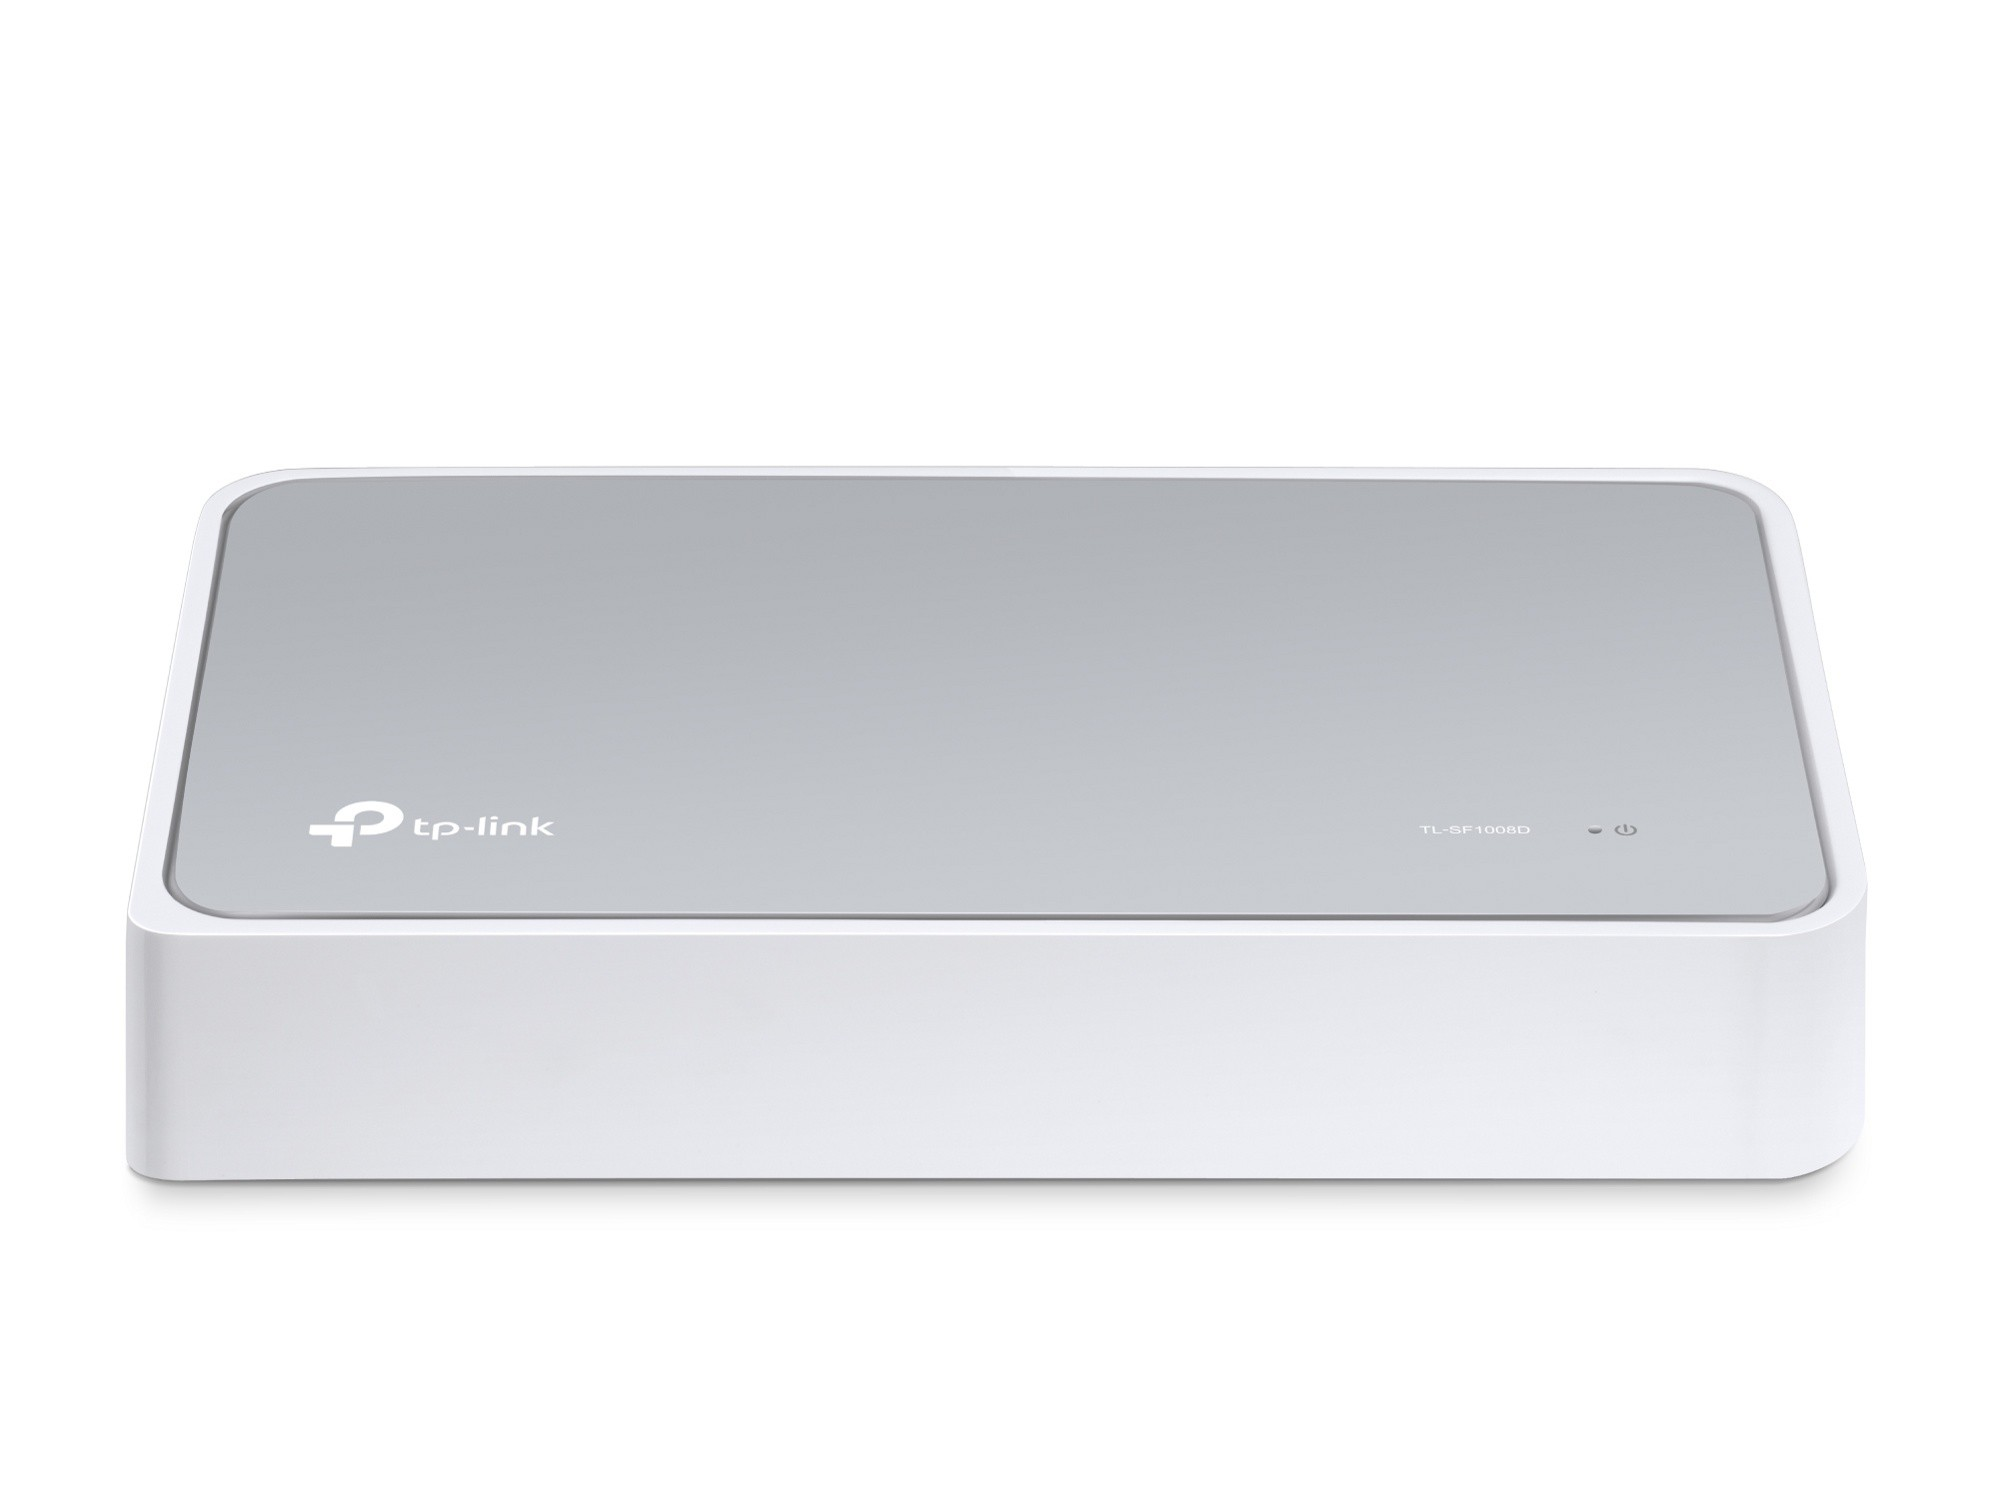 Коммутатор TP-Link TL-SF1008D 8xLan ethernet switch